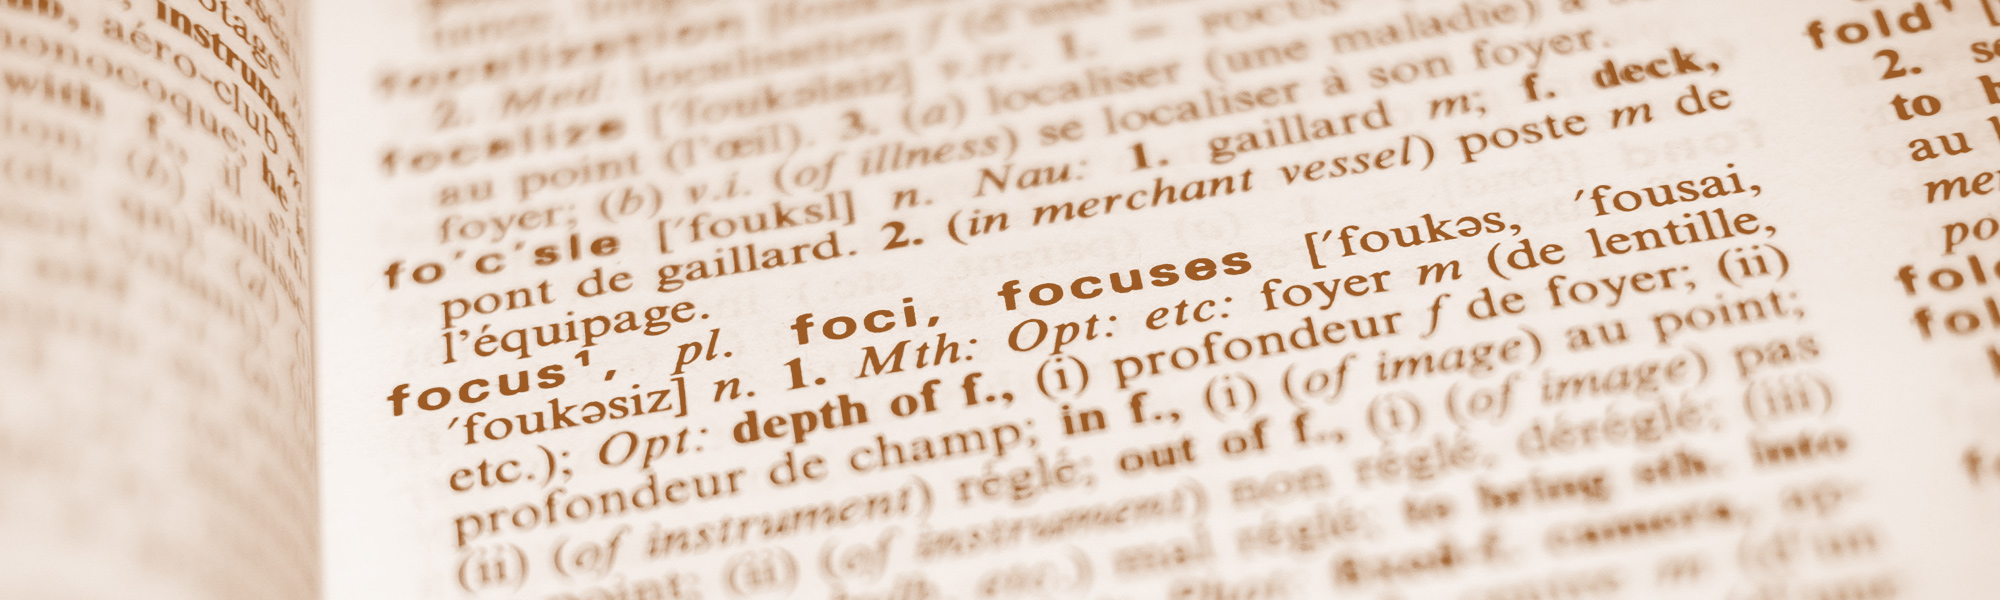 Glossary - Real Estate is full of phrases and jargon that isn't always easy to understand. We want to make the process as easy as possible for you so have compiled a list of common words and phrases that may be helpful.